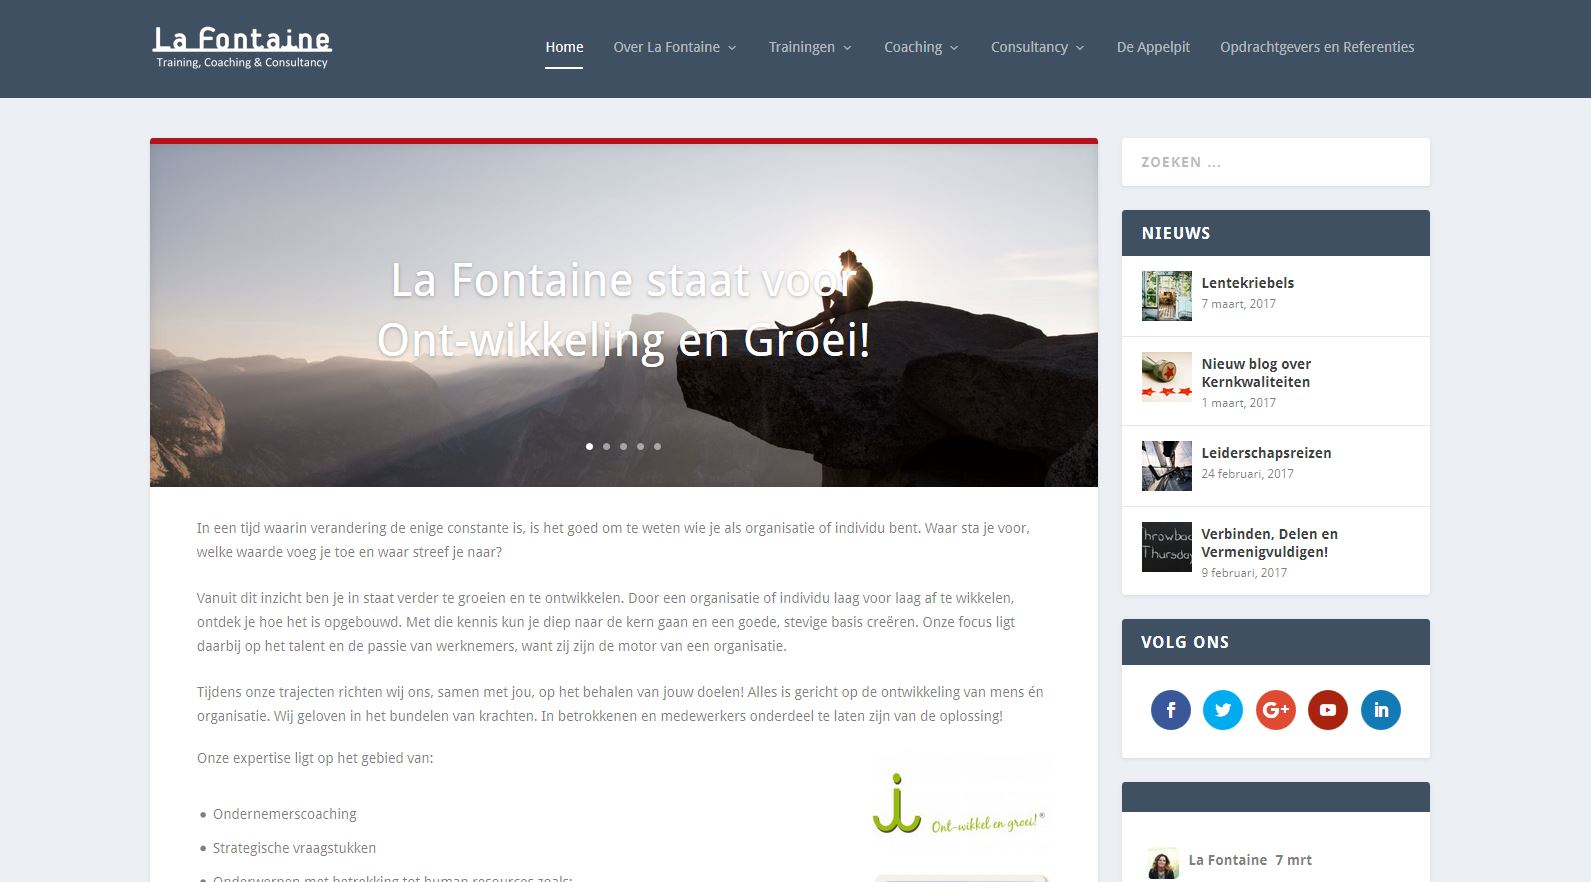 WordPress - La Fontaine - training, coaching & consultancy